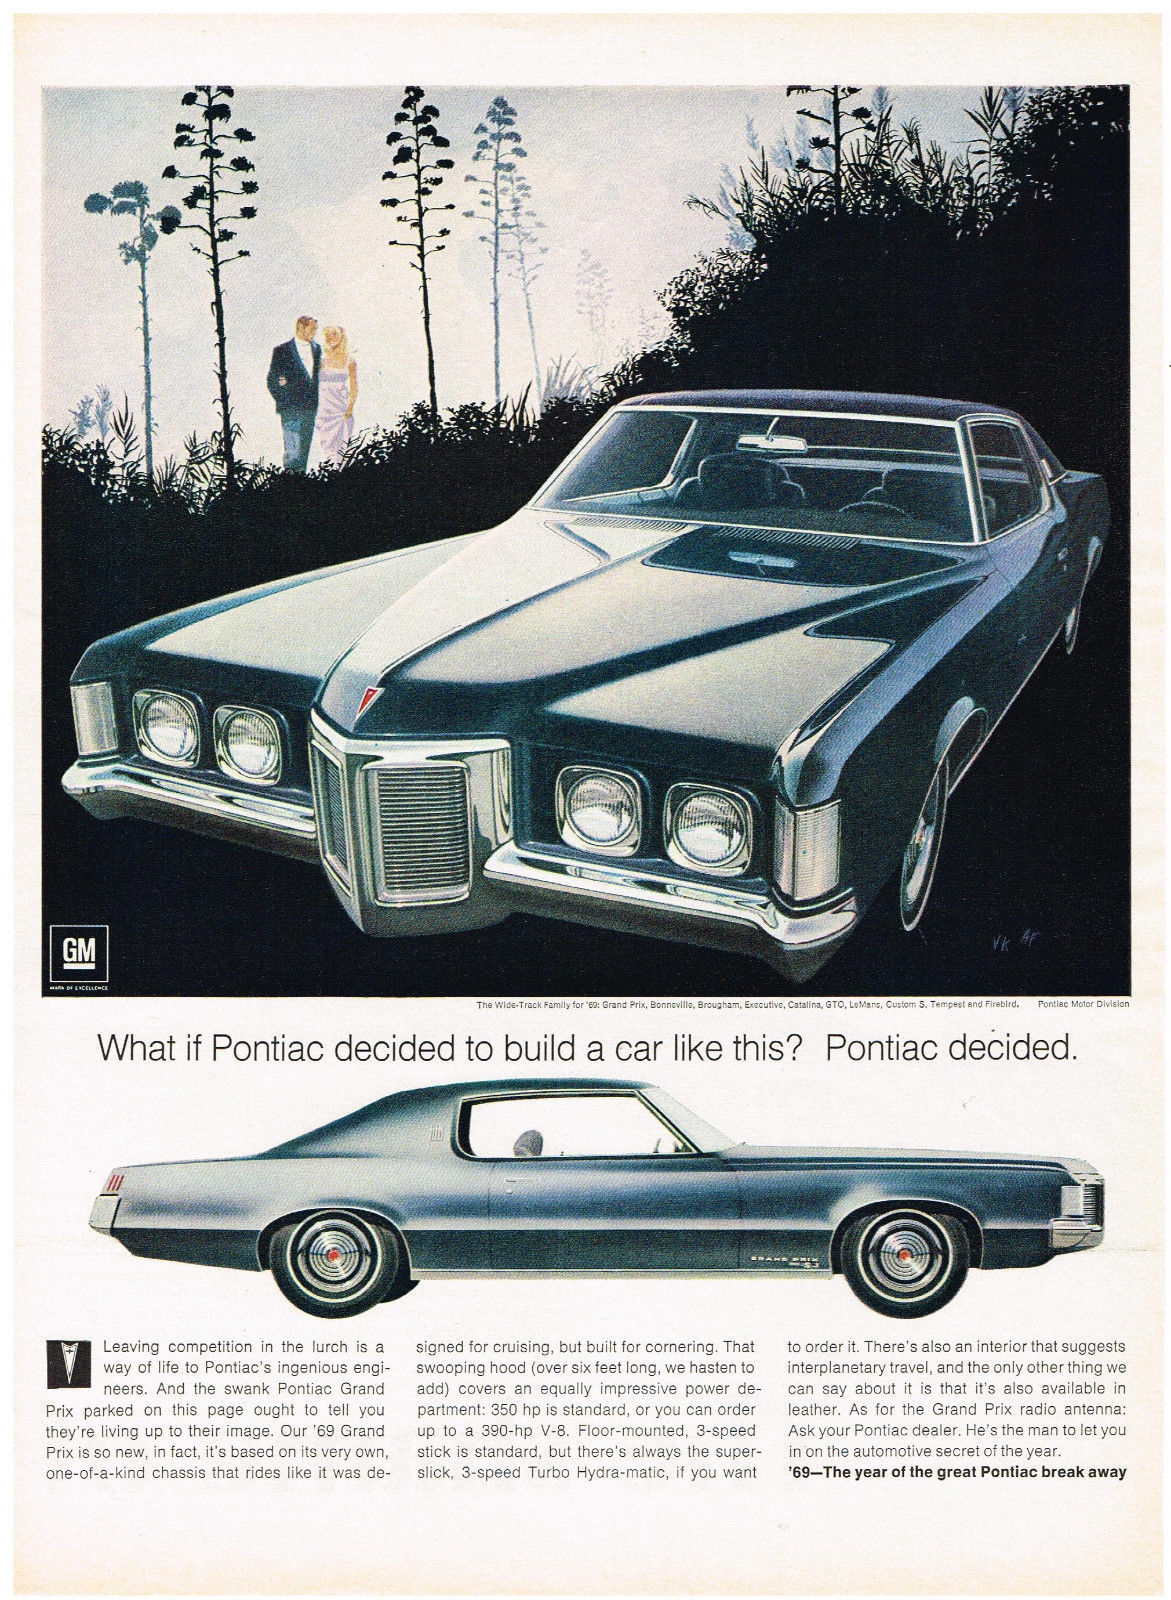 Vintage 1969 Magazine Ad Pontiac Grand Prix On Its Own One-Of-A-Kind Chassis - $5.93